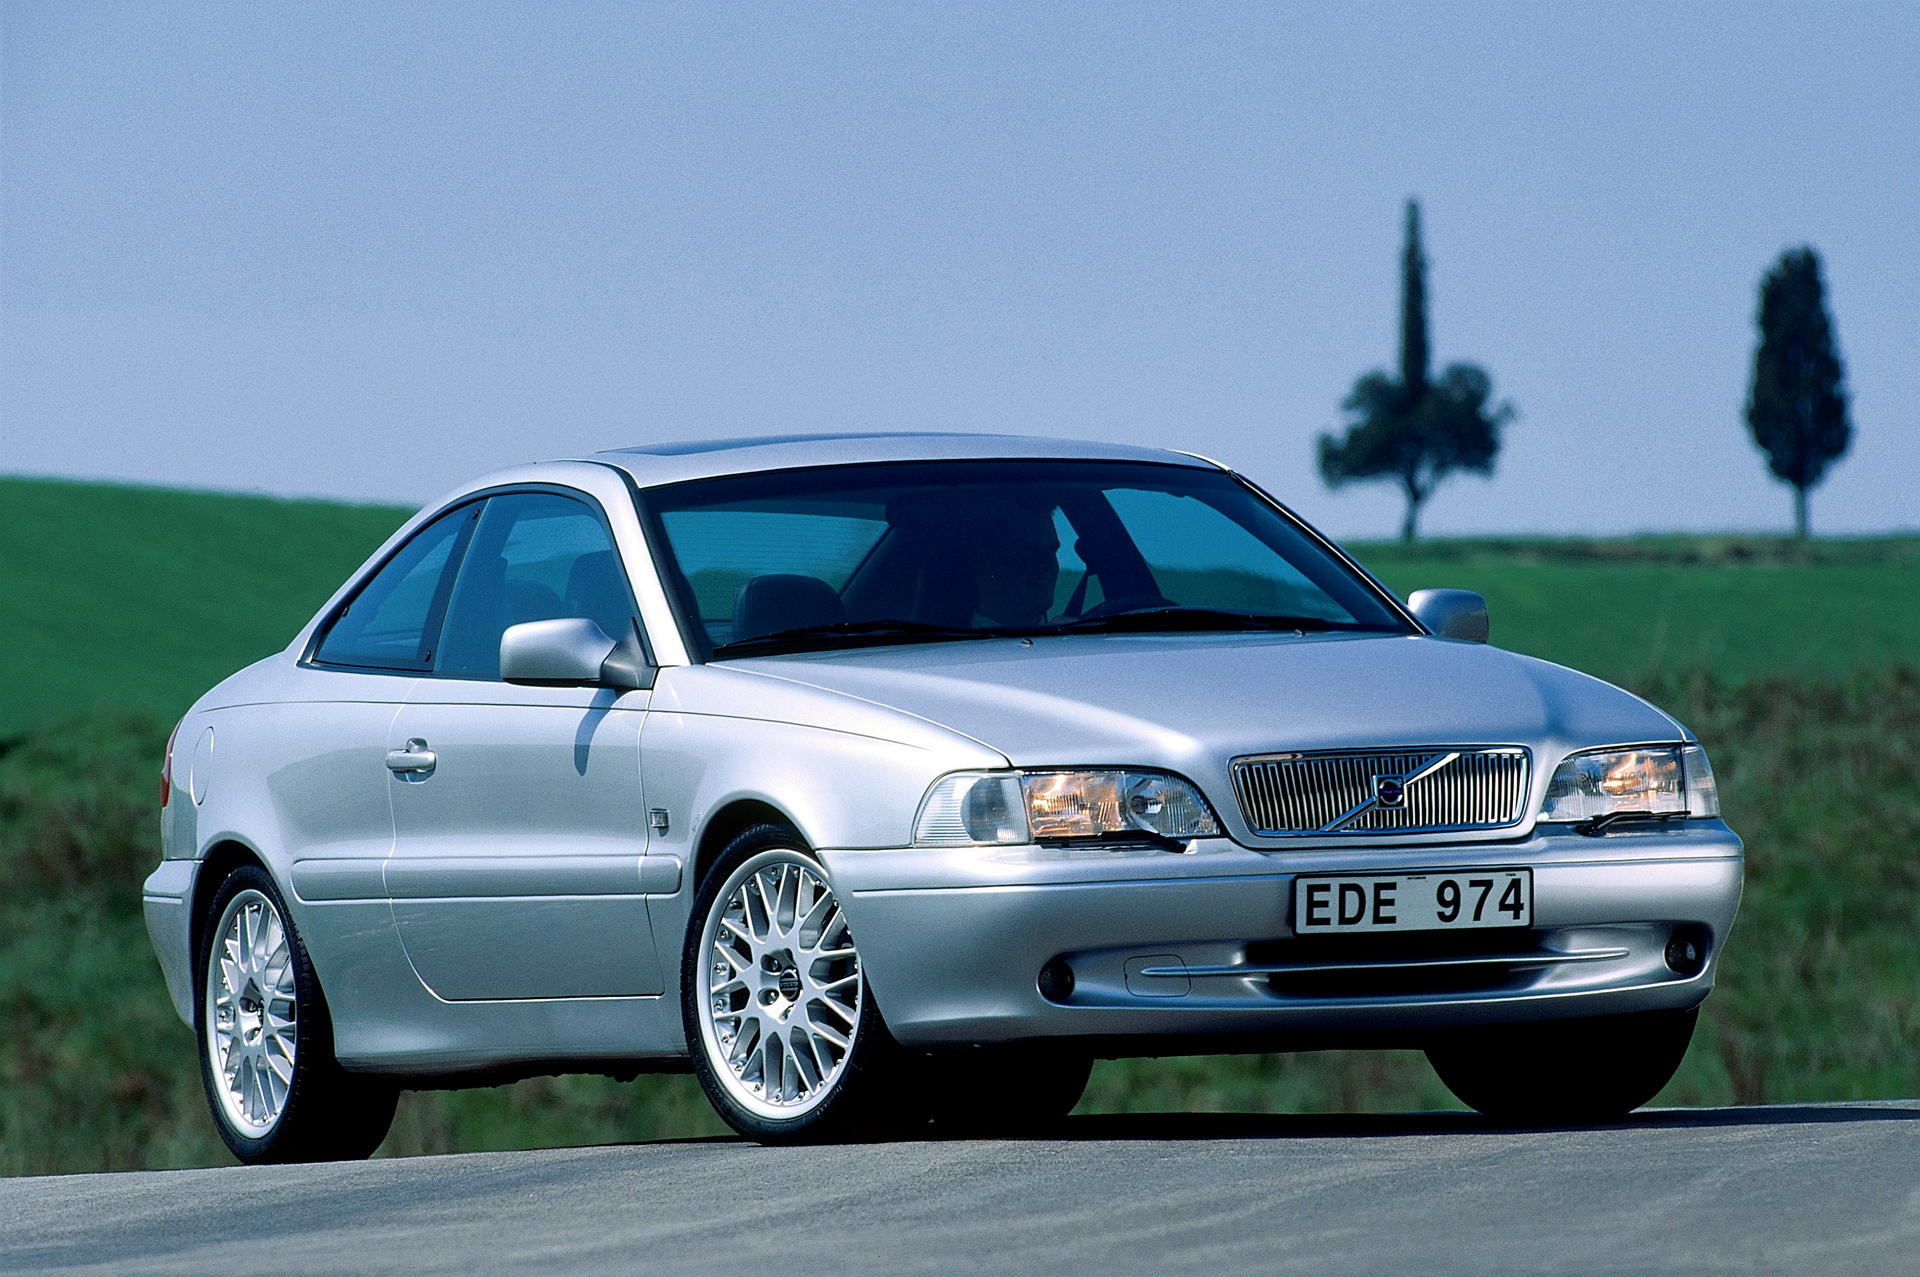 Volvo C70 Coupe © Zhejiang Geely Holding Group Co., Ltd